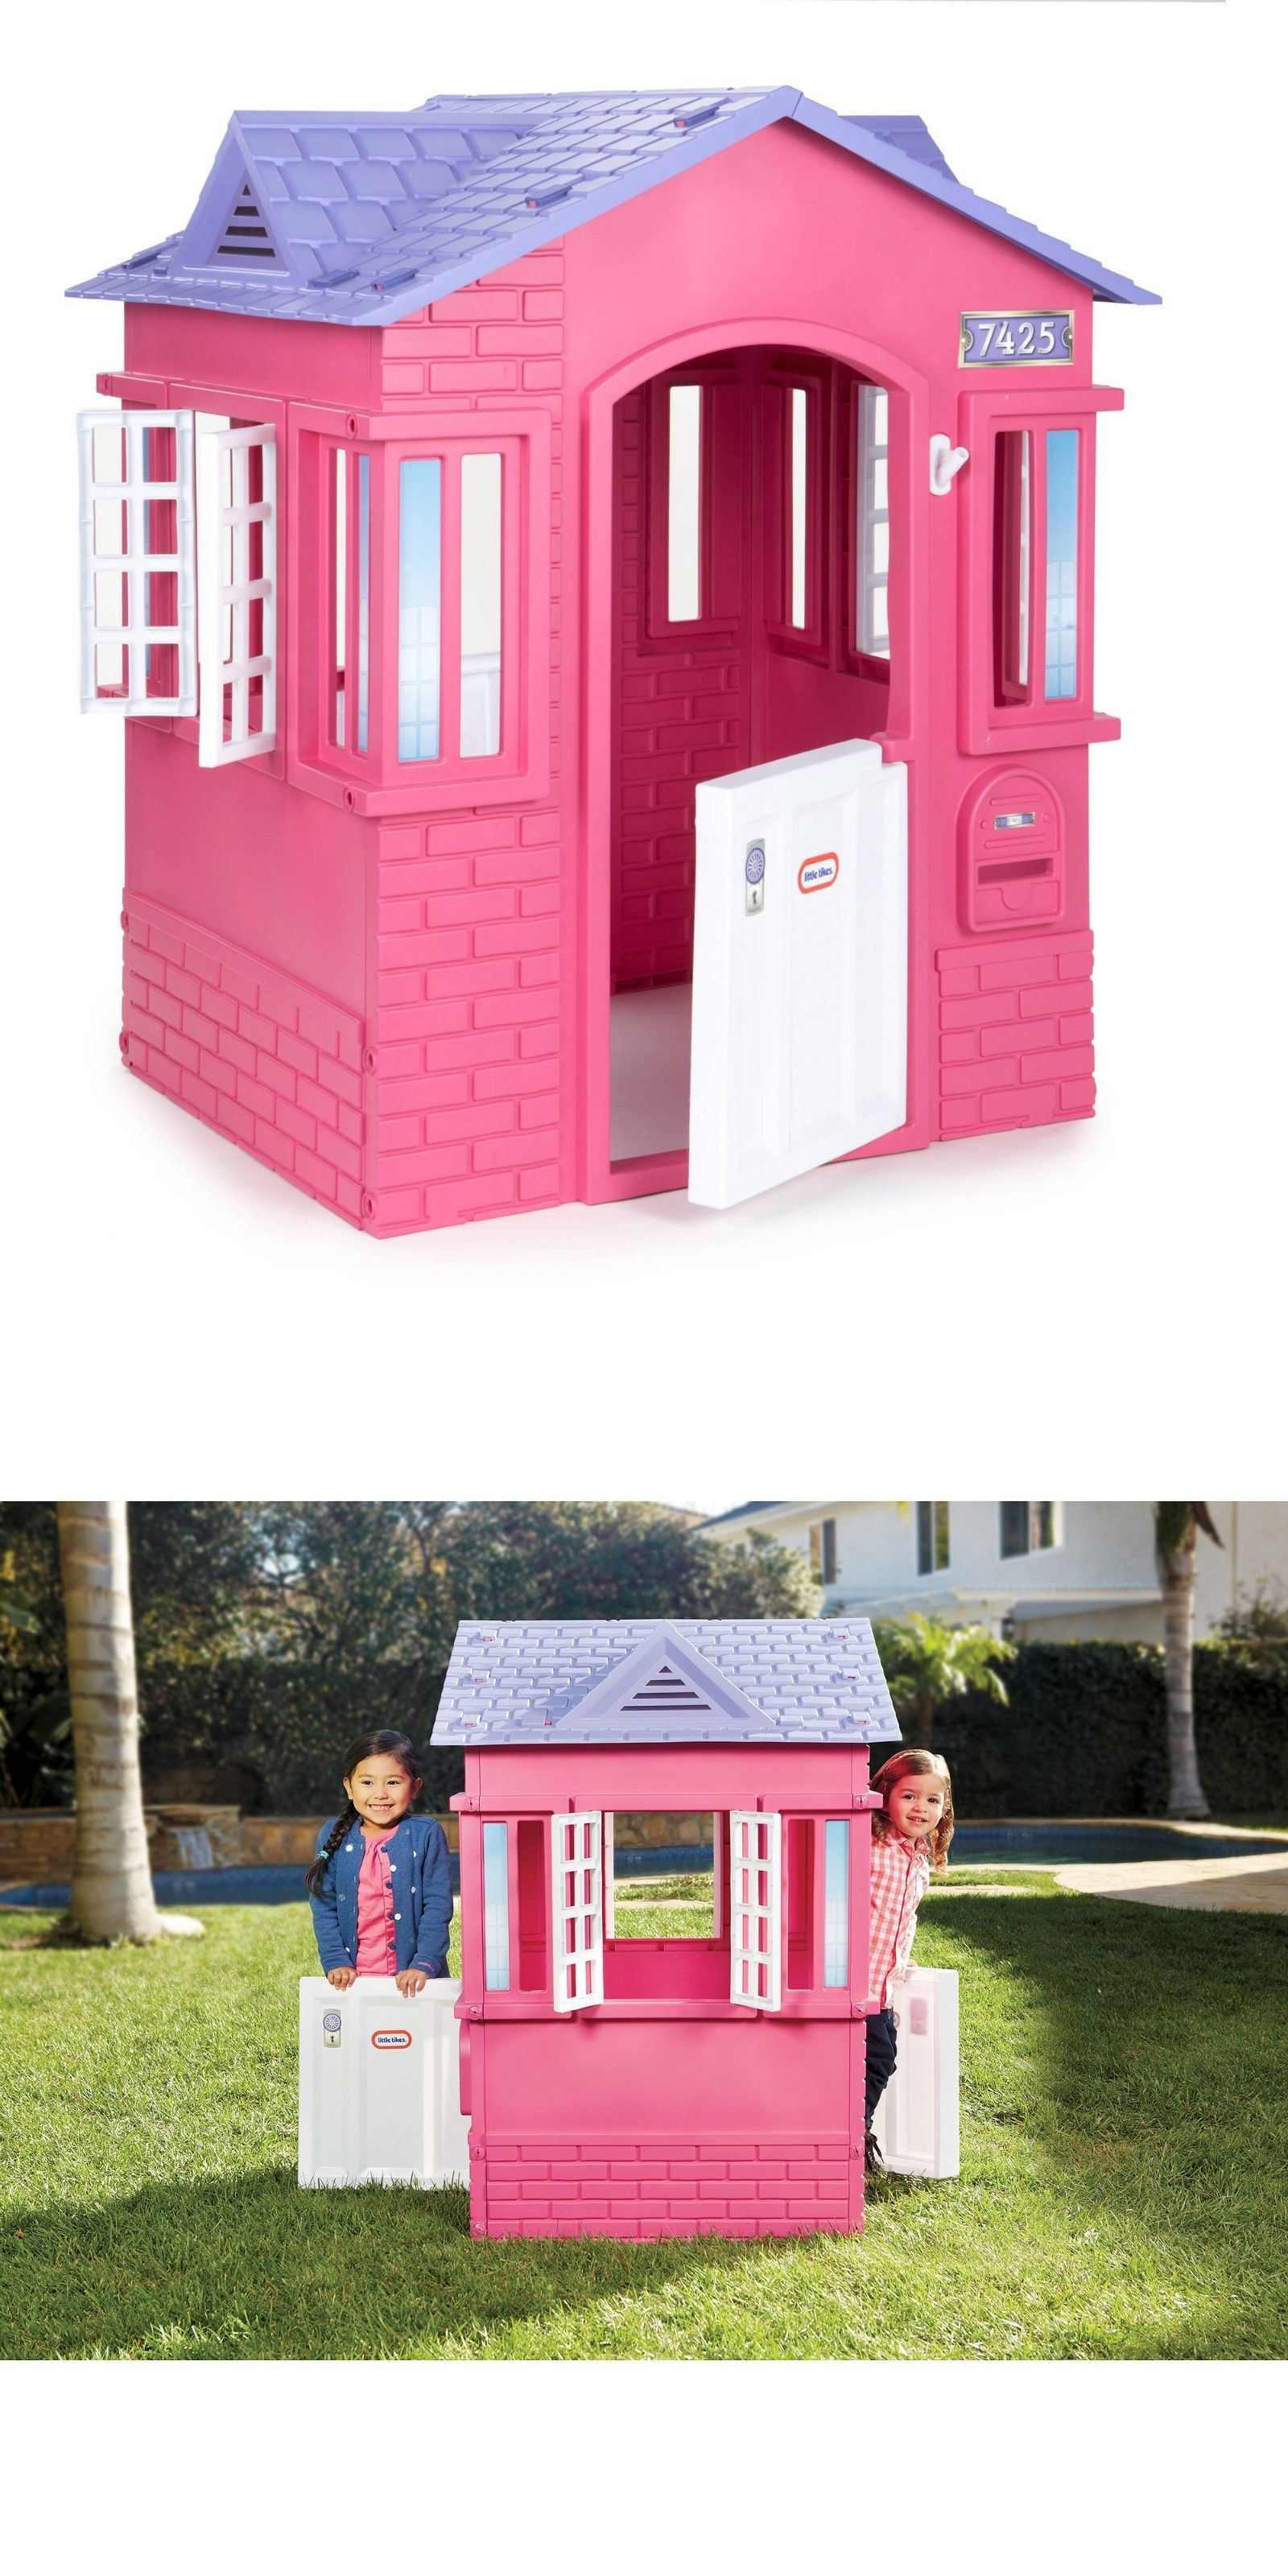 Permanent Playhouses 145995 Little Tikes Princess Cottage Playhouse Pink Kids Play Toy Authentic Fast Ship It Now Only 105 99 On Ebay